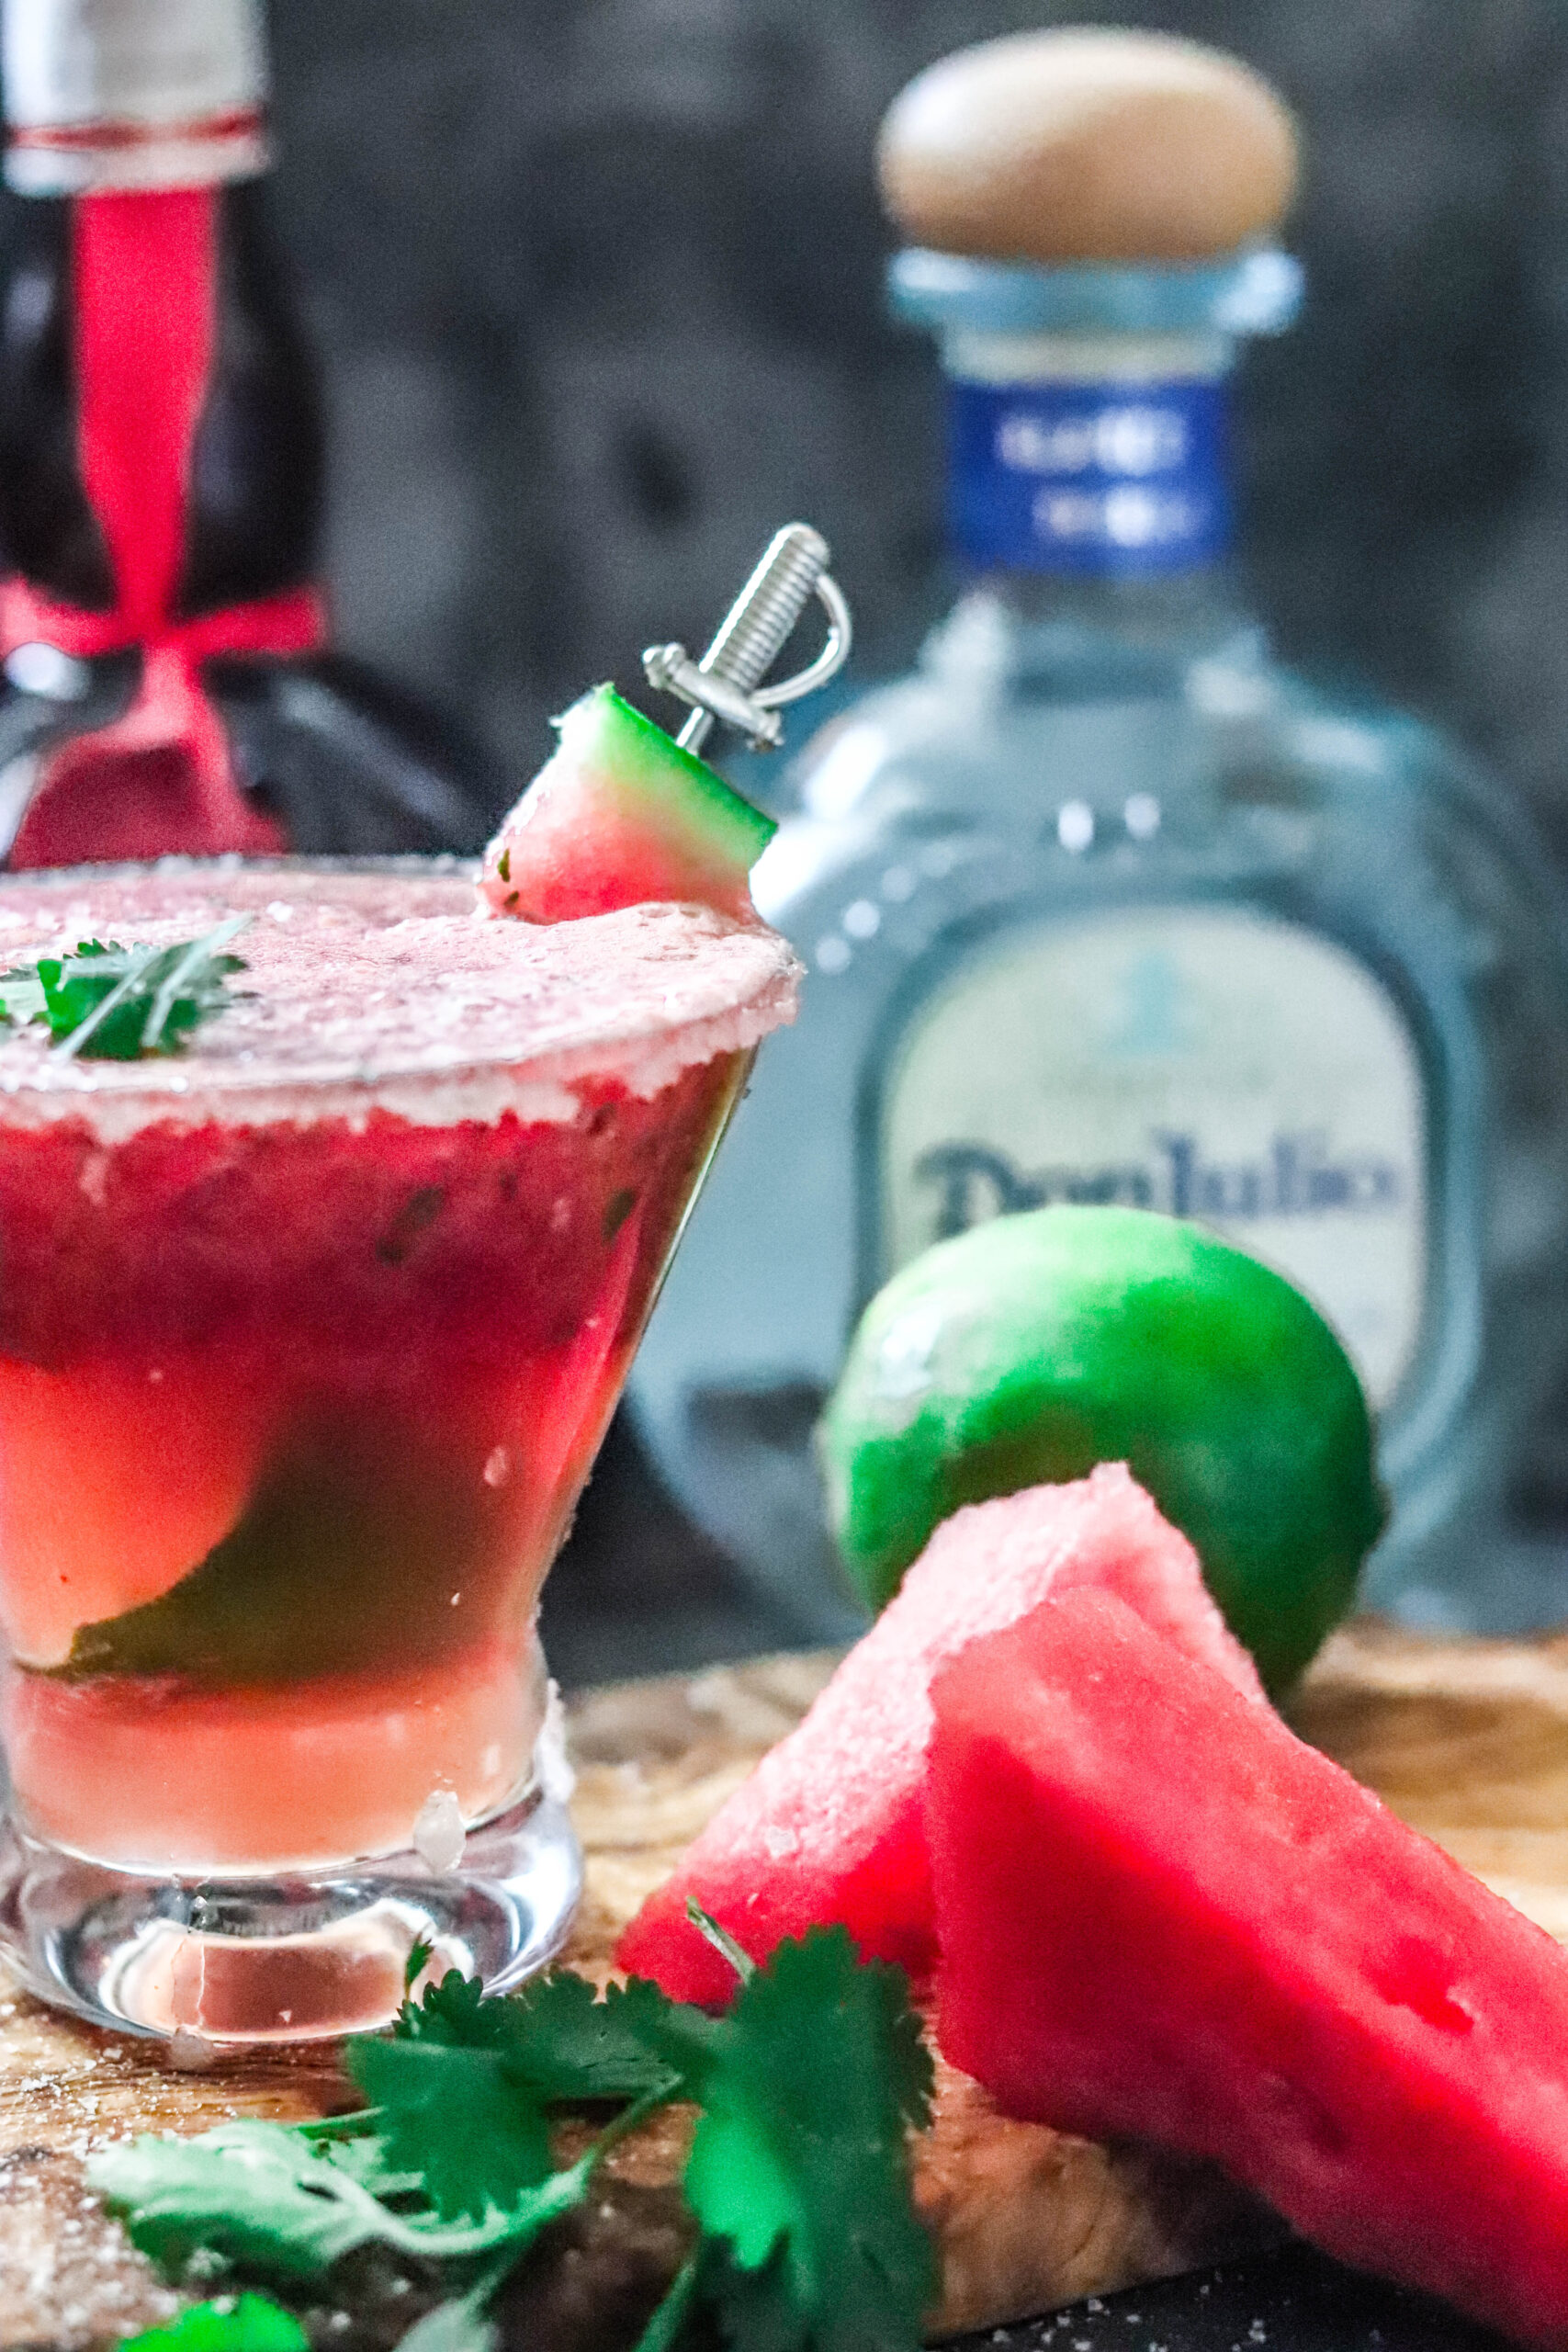 Watermelon margarita cocktail made with lime and Don Julia tequila.